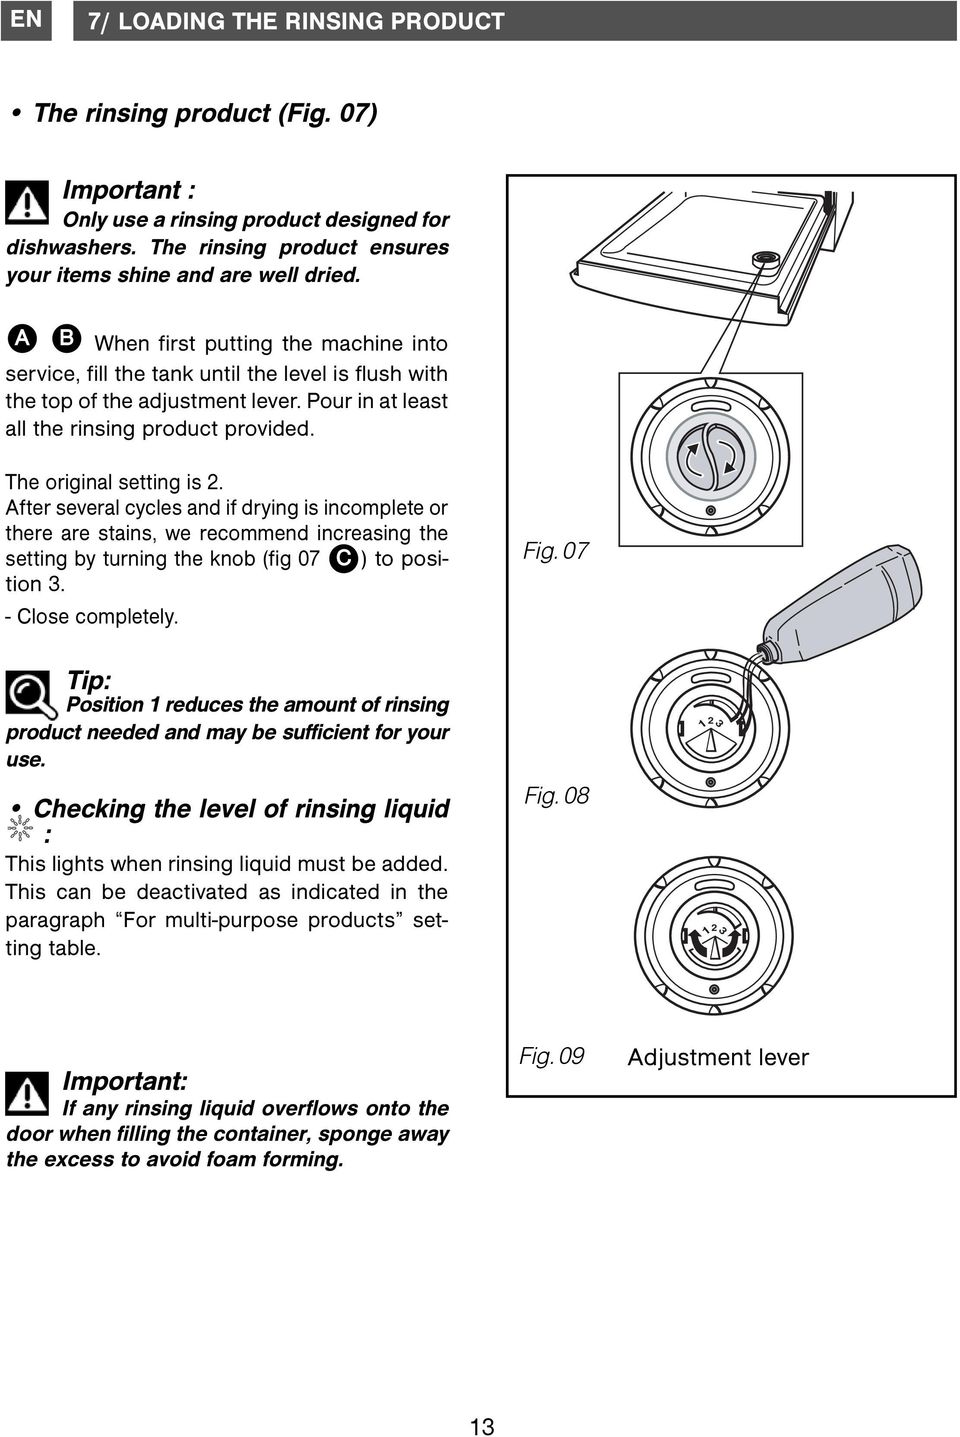 The original setting is 2. After several cycles and if drying is incomplete or there are stains, we recommend increasing the setting by turning the knob (fig 07 C ) to position 3. - Close completely.